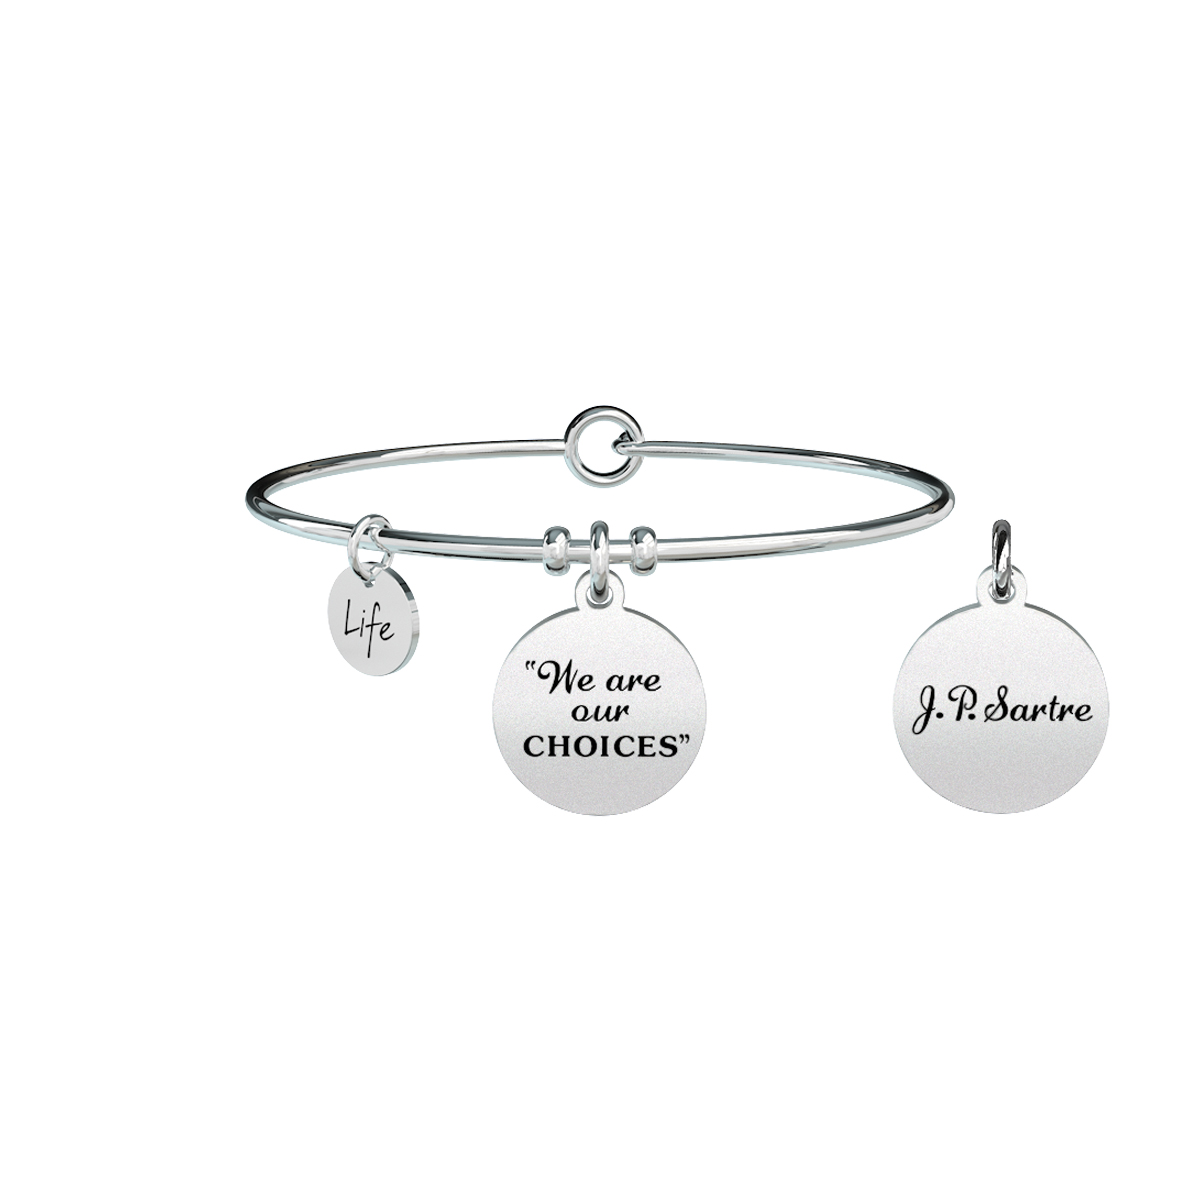 Bracciale KIDULT philosophy acciaio 316L 731301 WE ARE OUR CHOICES